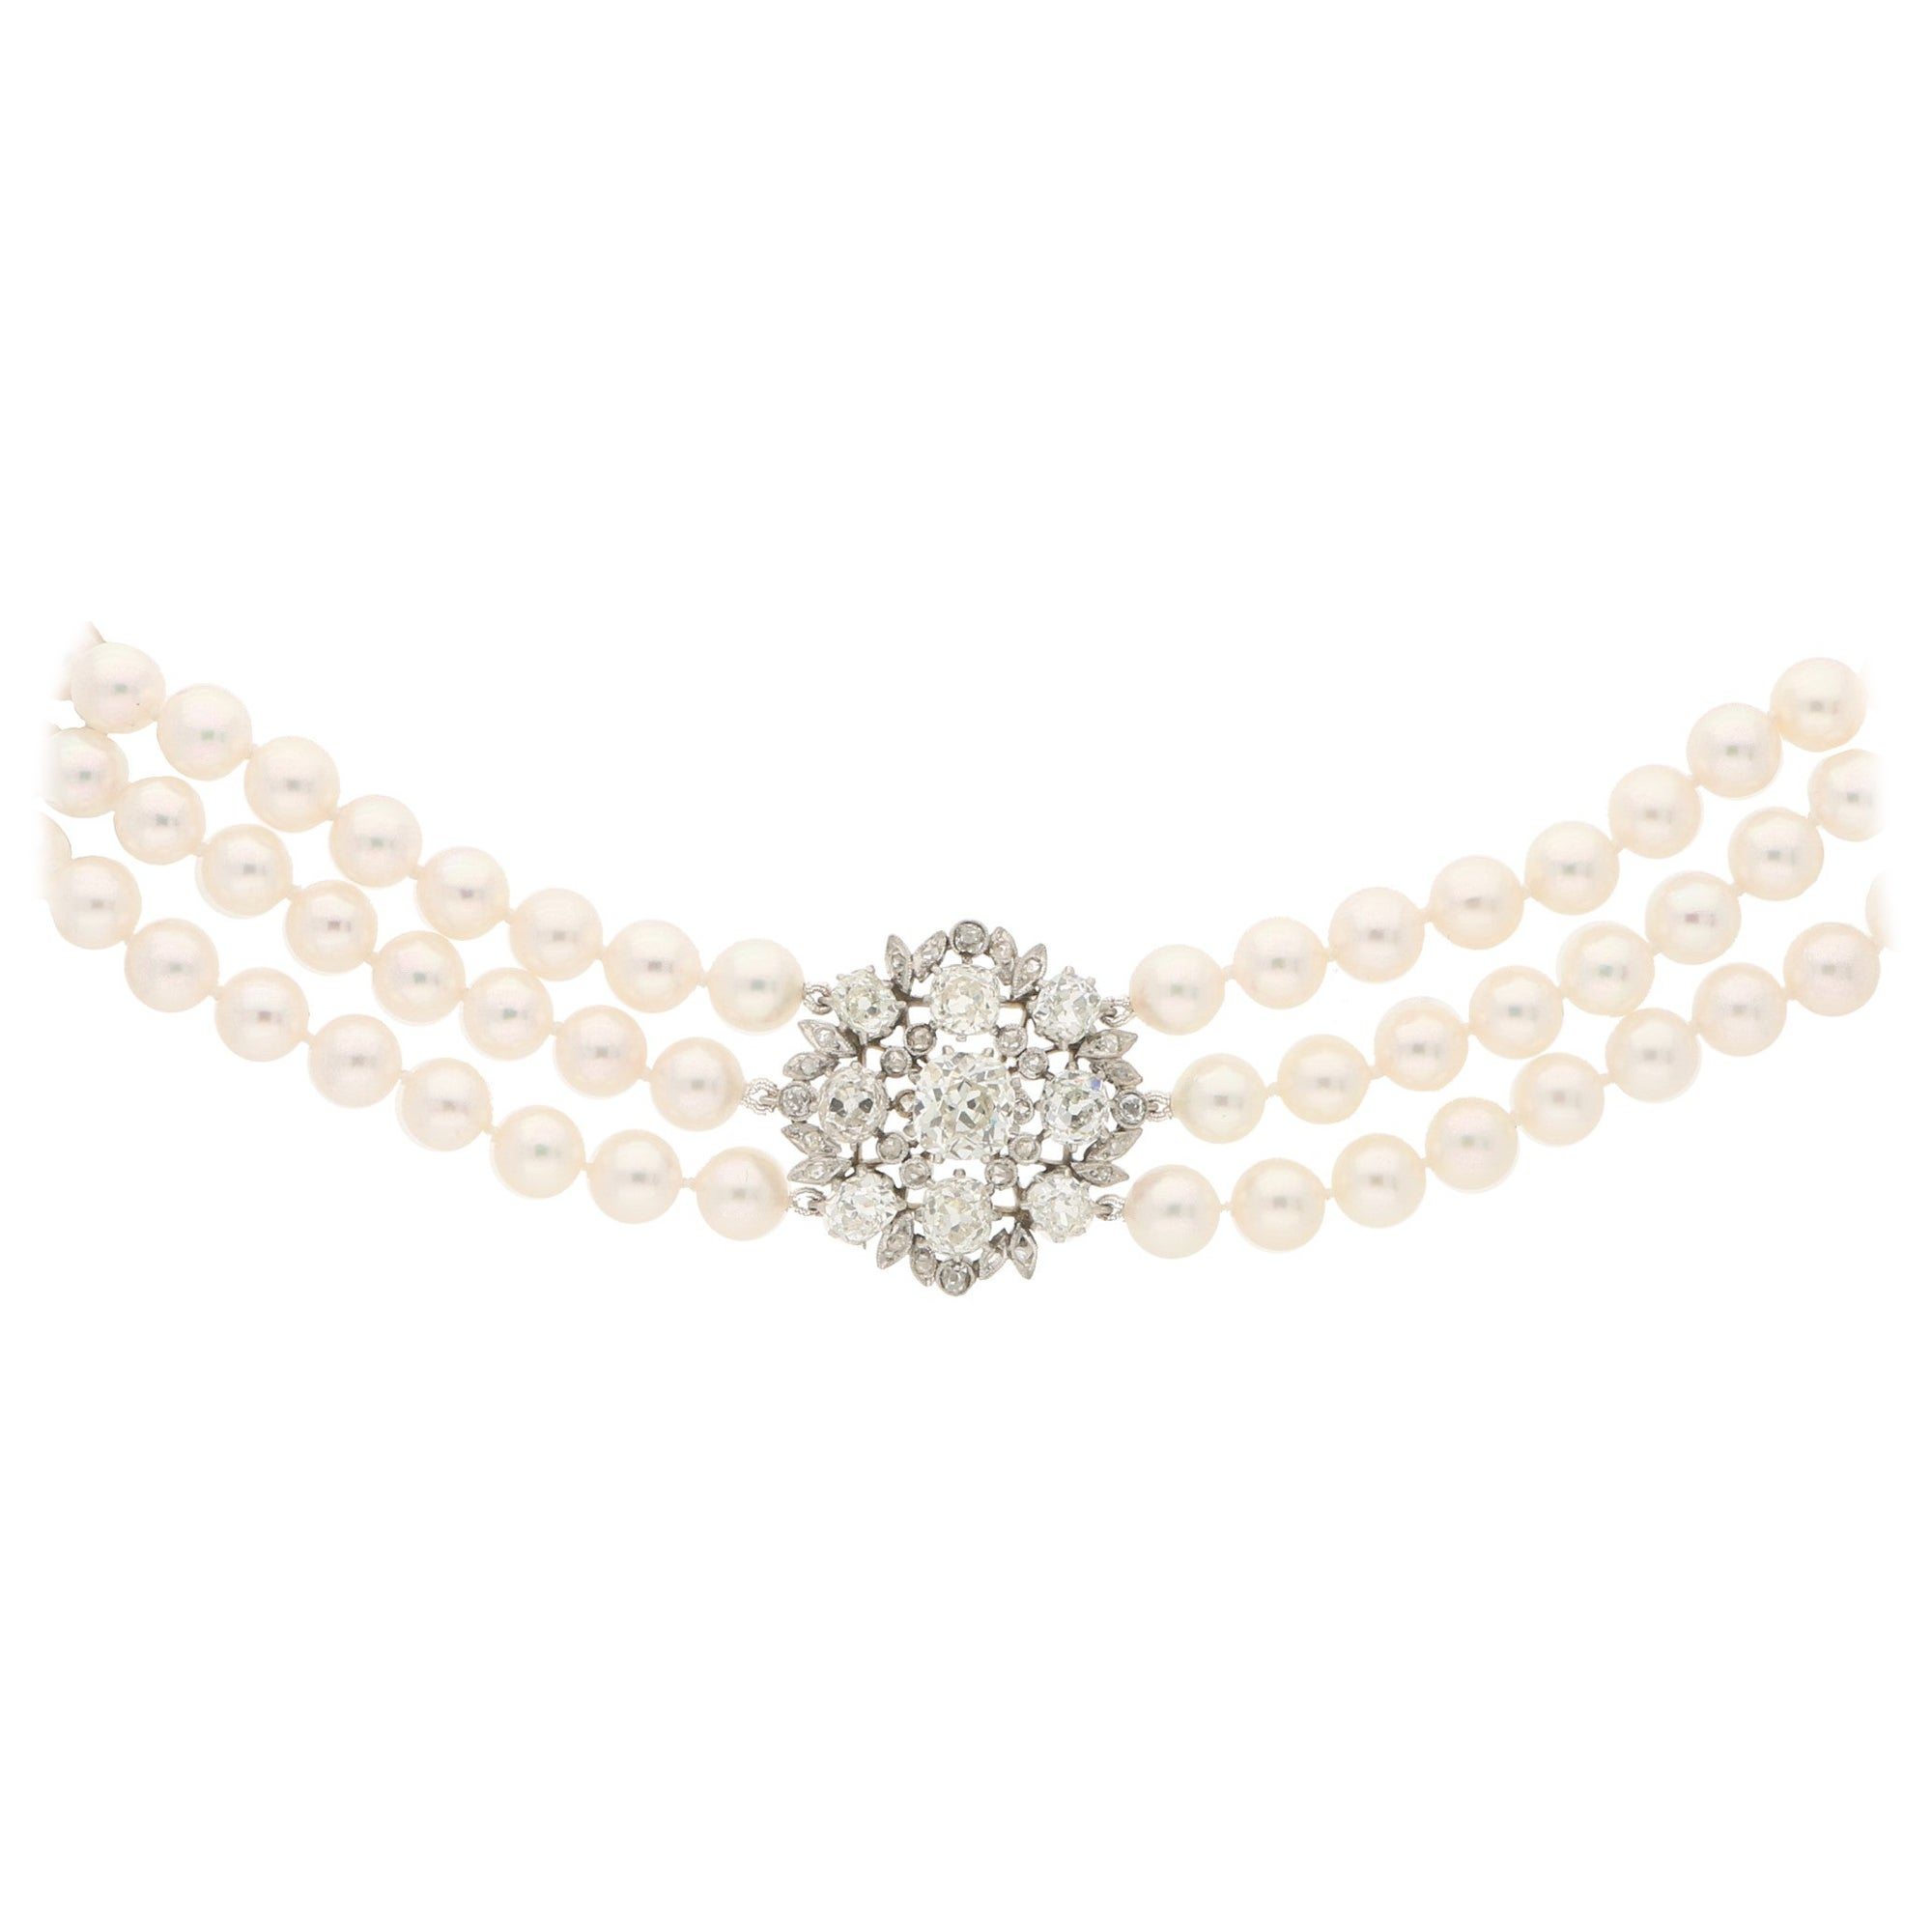 Edwardian Diamond and Cultured Pearl Choker Strand Necklace in Platinum and Gold